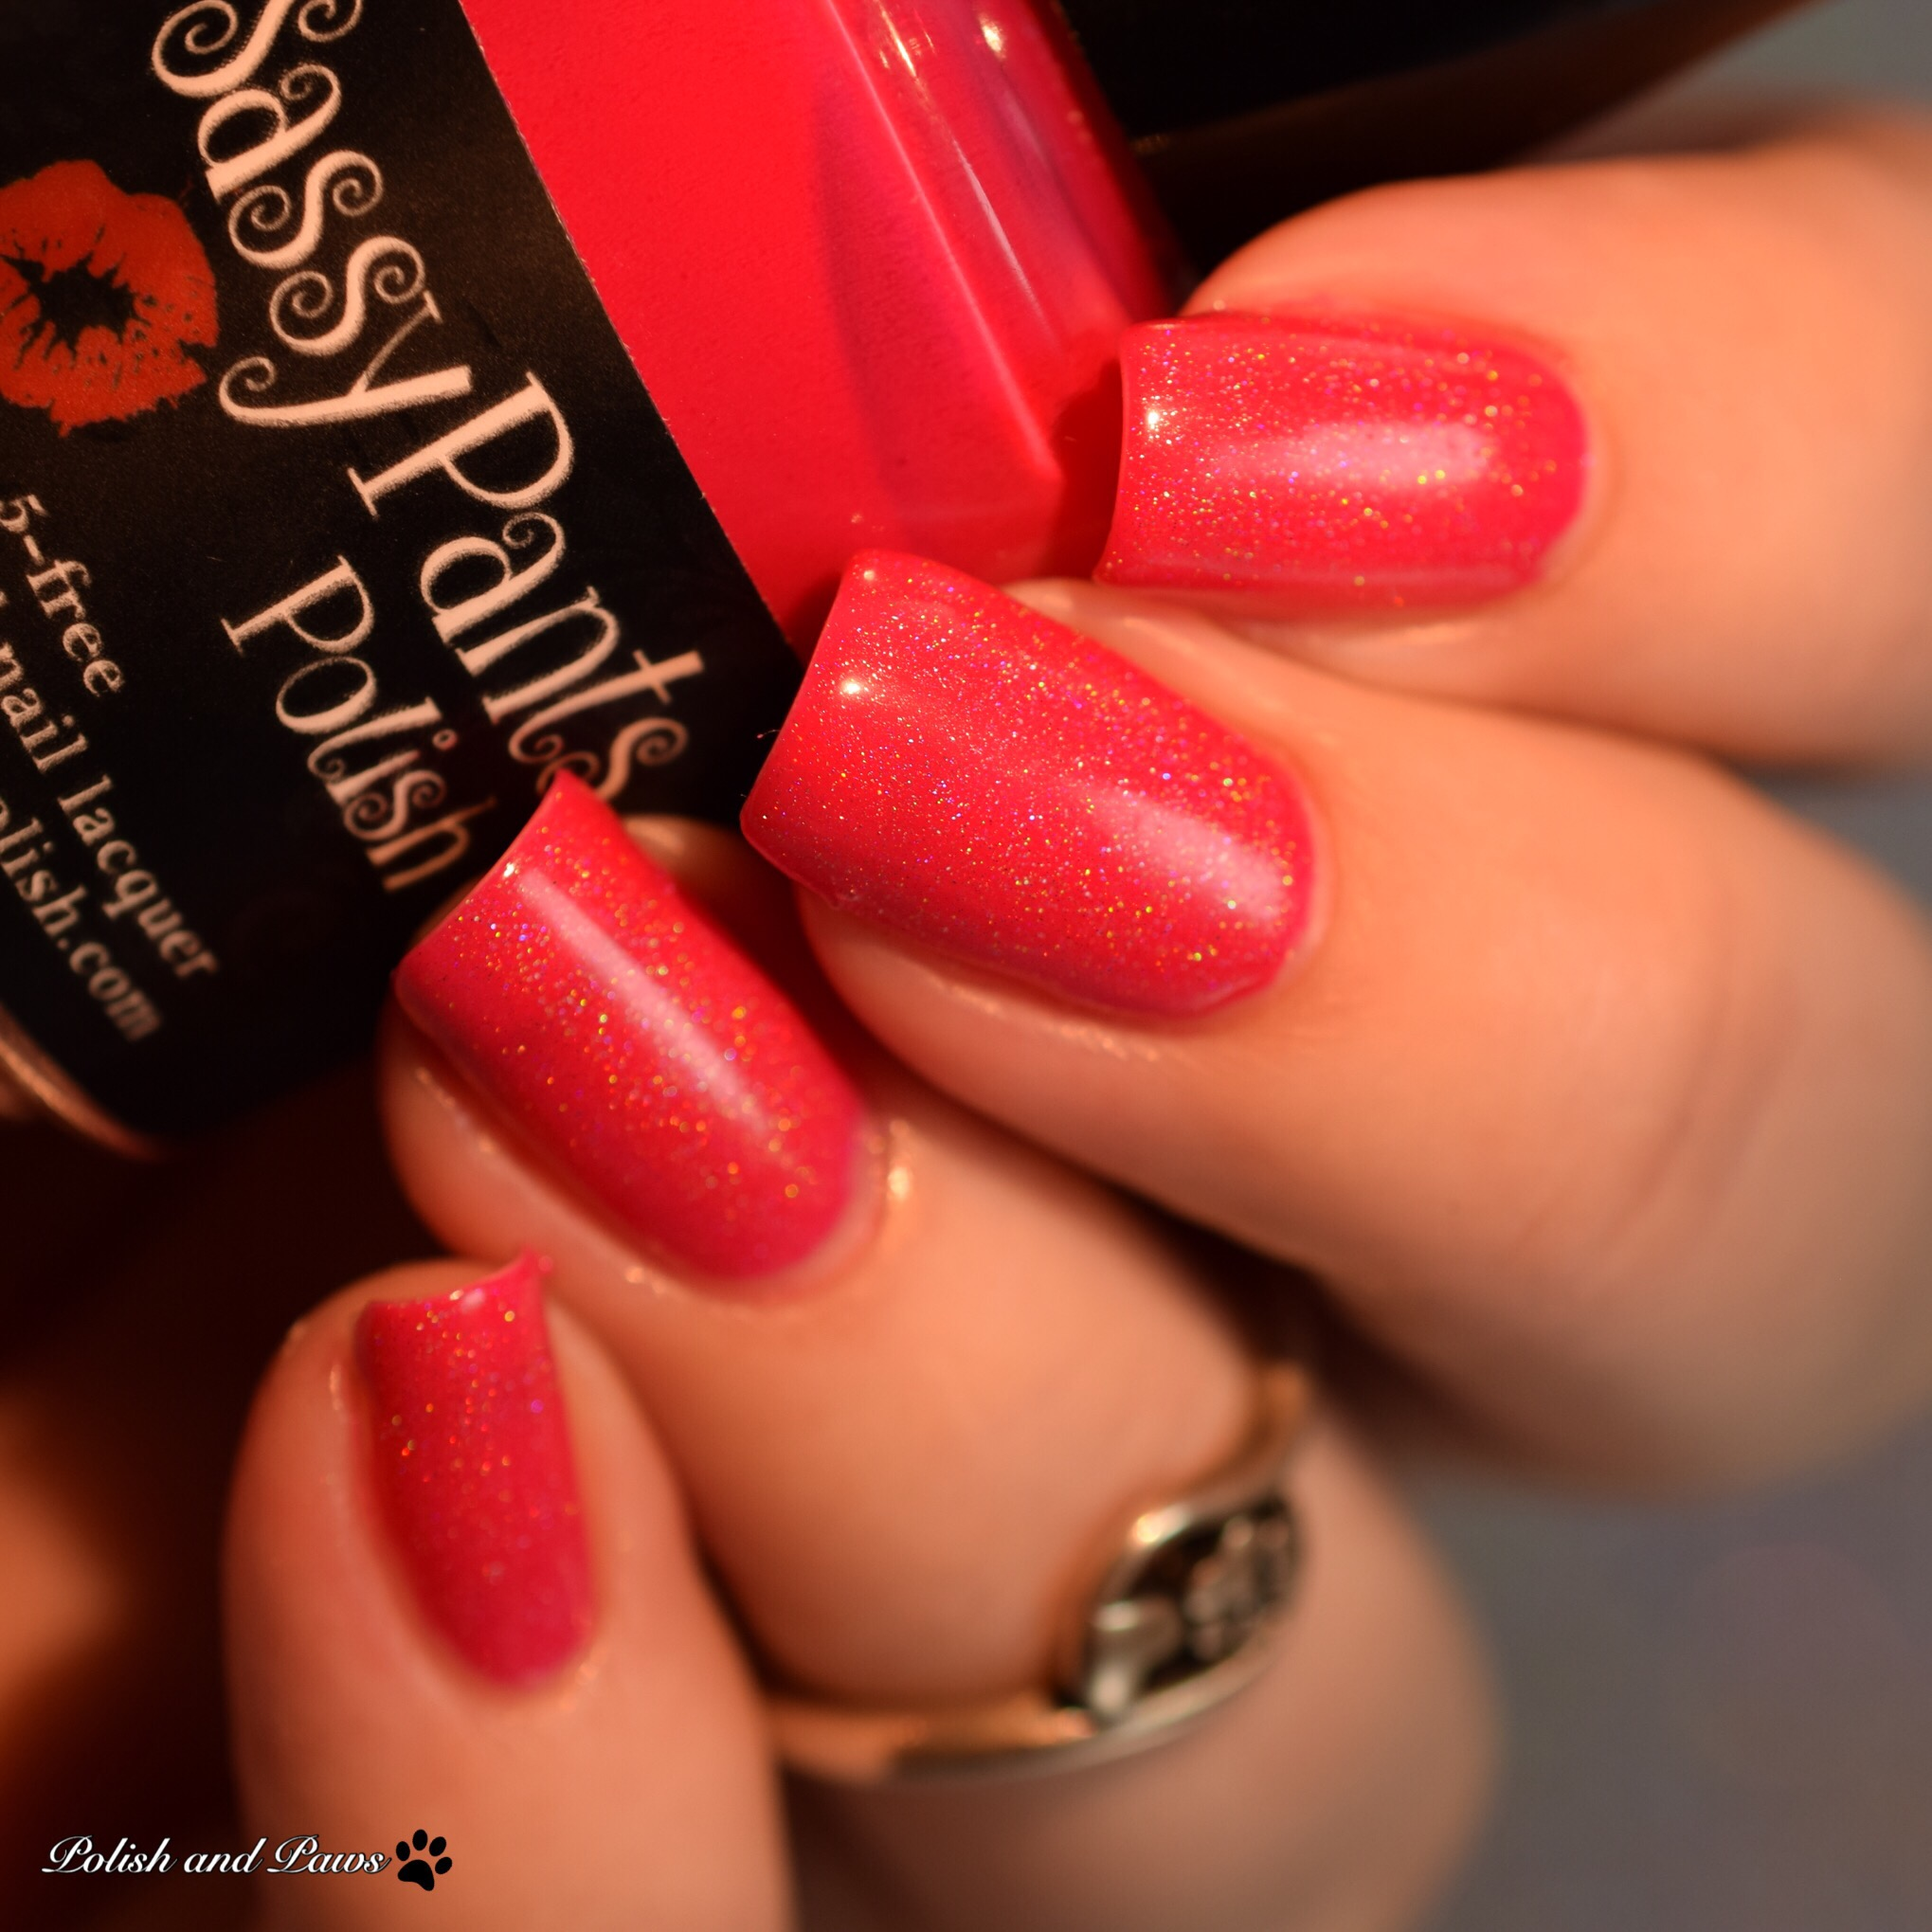 Sassy Pants Polish Love Always layered over Kiss Off!